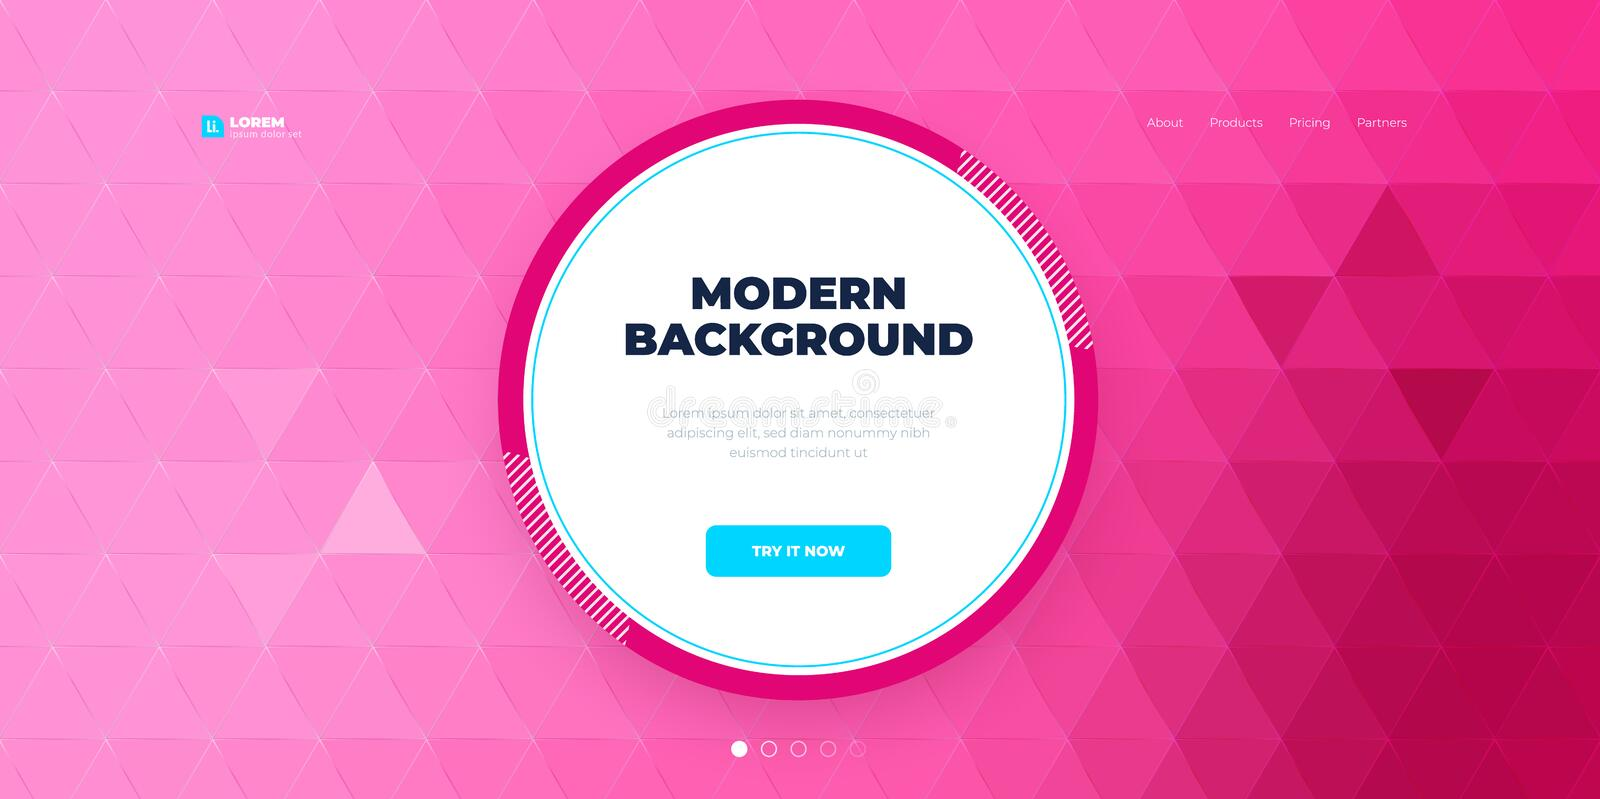 Geometric abstract gradient background design. Triangle shape abstract vector composition on background. Futuristic vector illustration